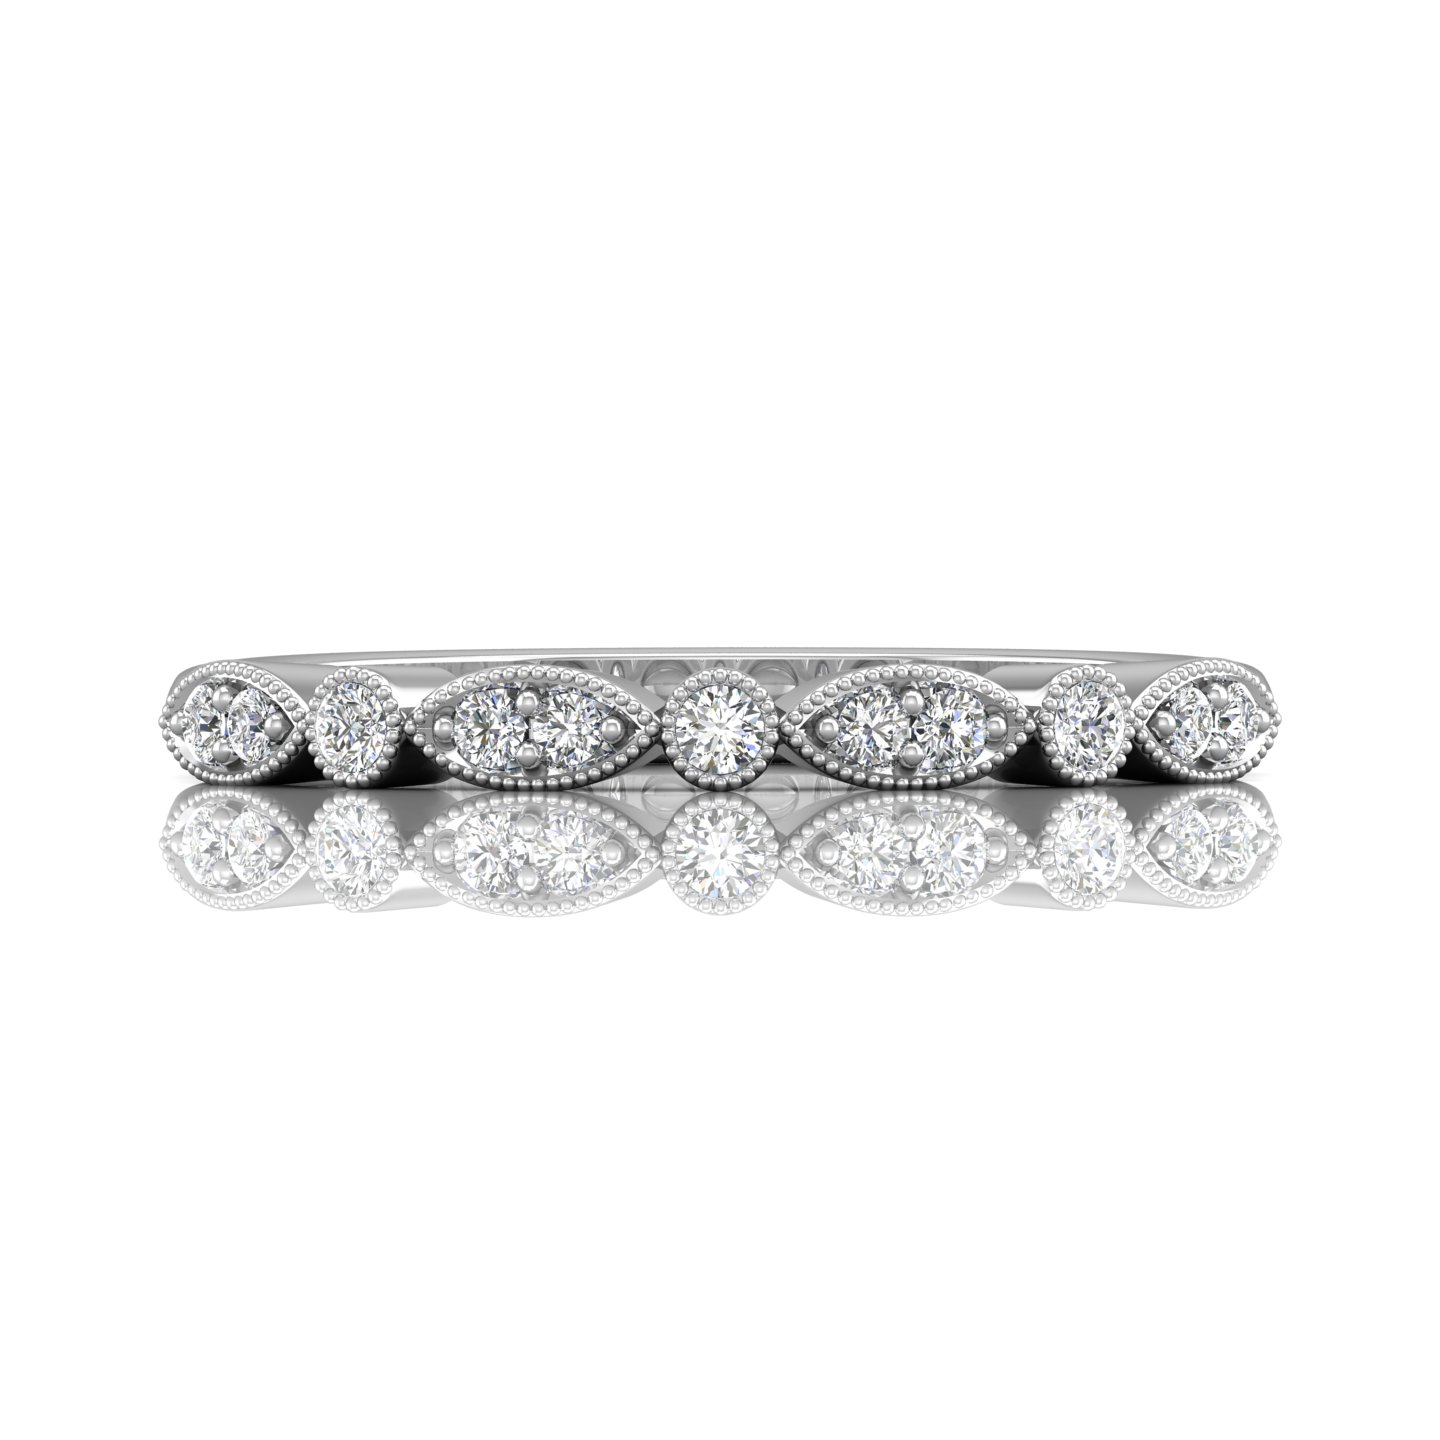 Rings - 14K White Gold FlyerFit Micropave Bead Set Wedding Band